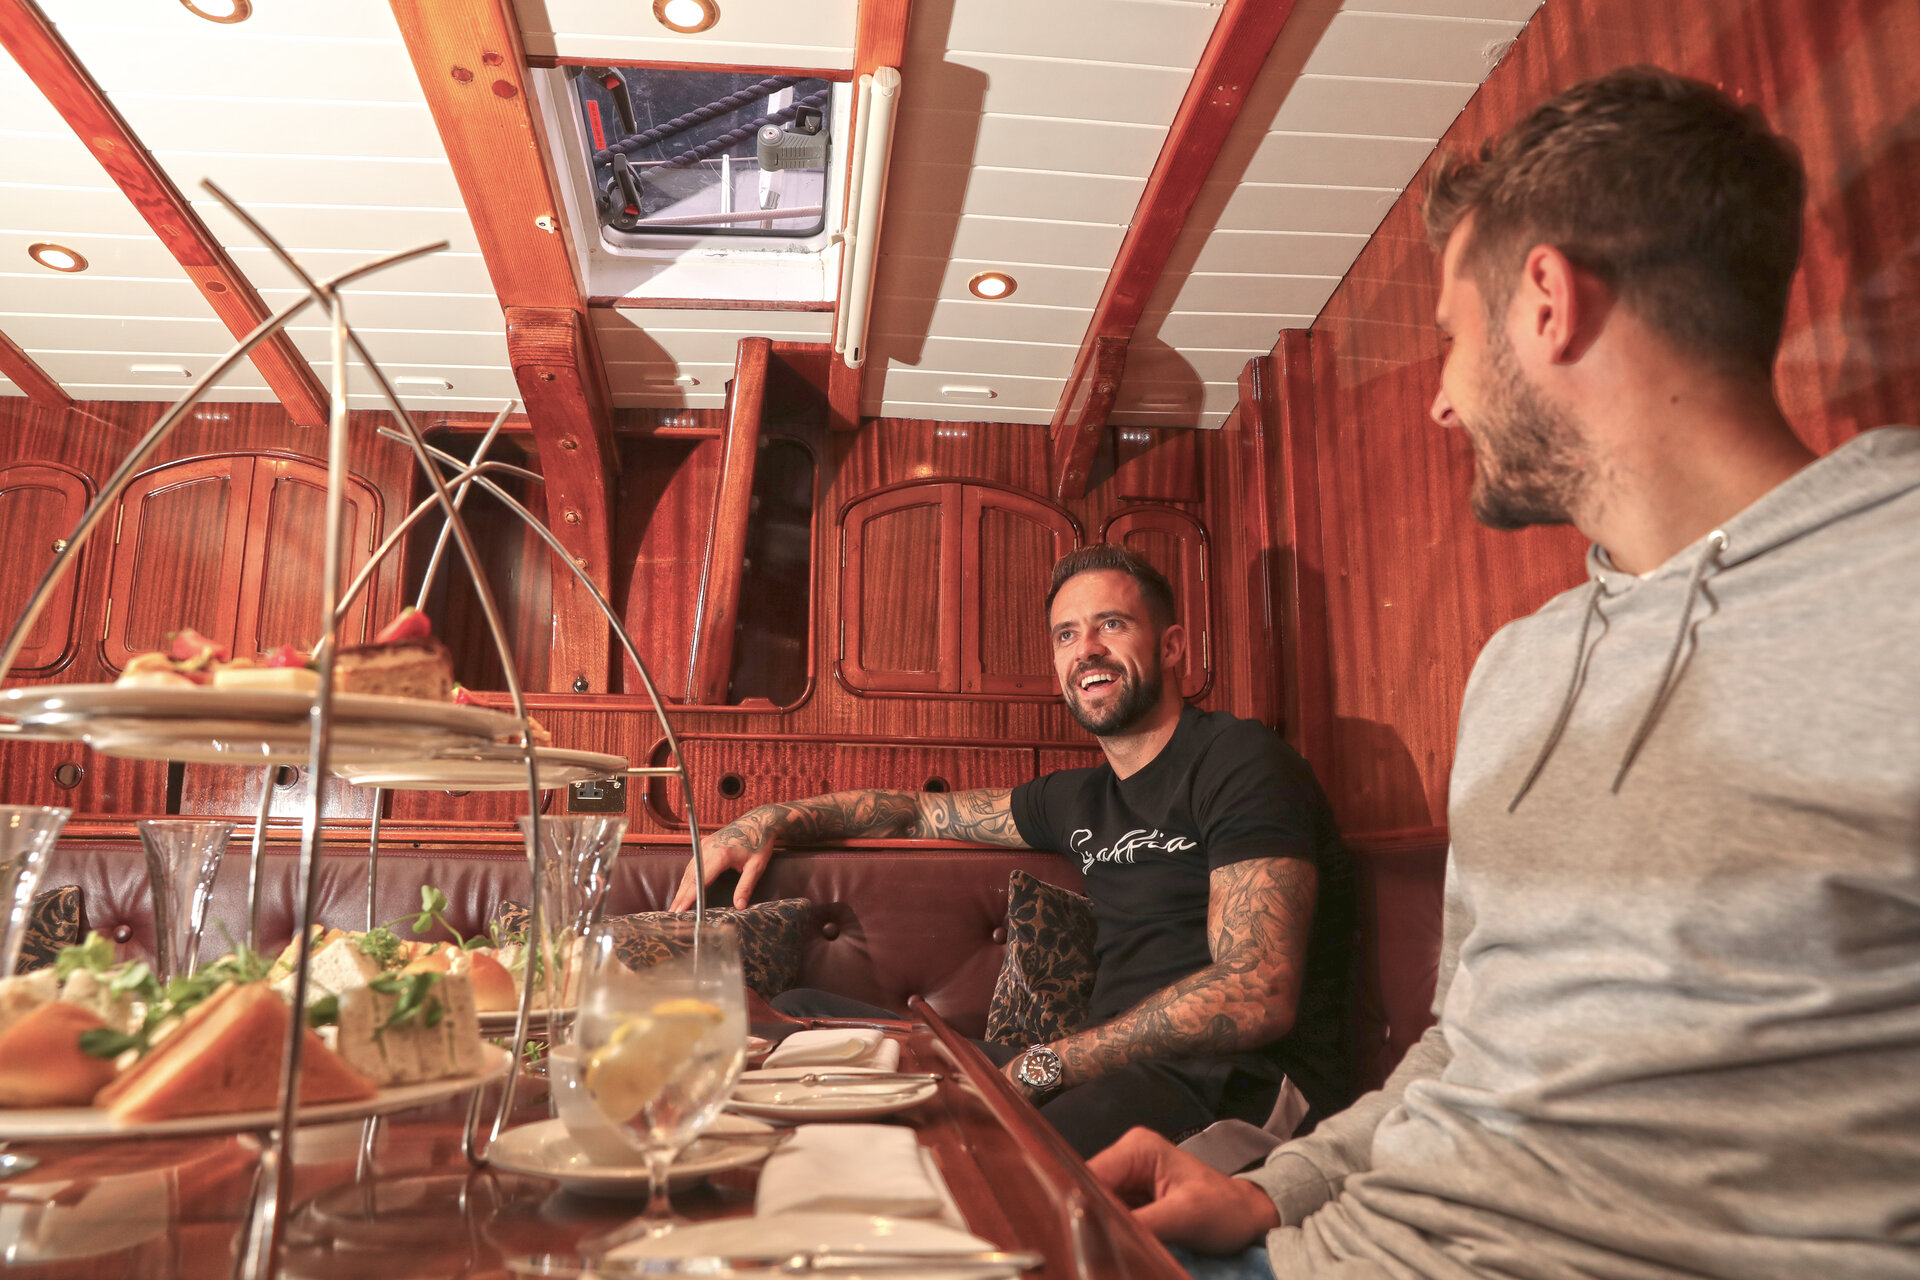 SOUTHAMPTON, ENGLAND - AUGUST 30: Danny Ings(L) and Jack Stephens during a photoshoot for Southampton FC, on August 30, 2018 in Southampton, England. (Photo by Matt Watson/Southampton FC via Getty Images)